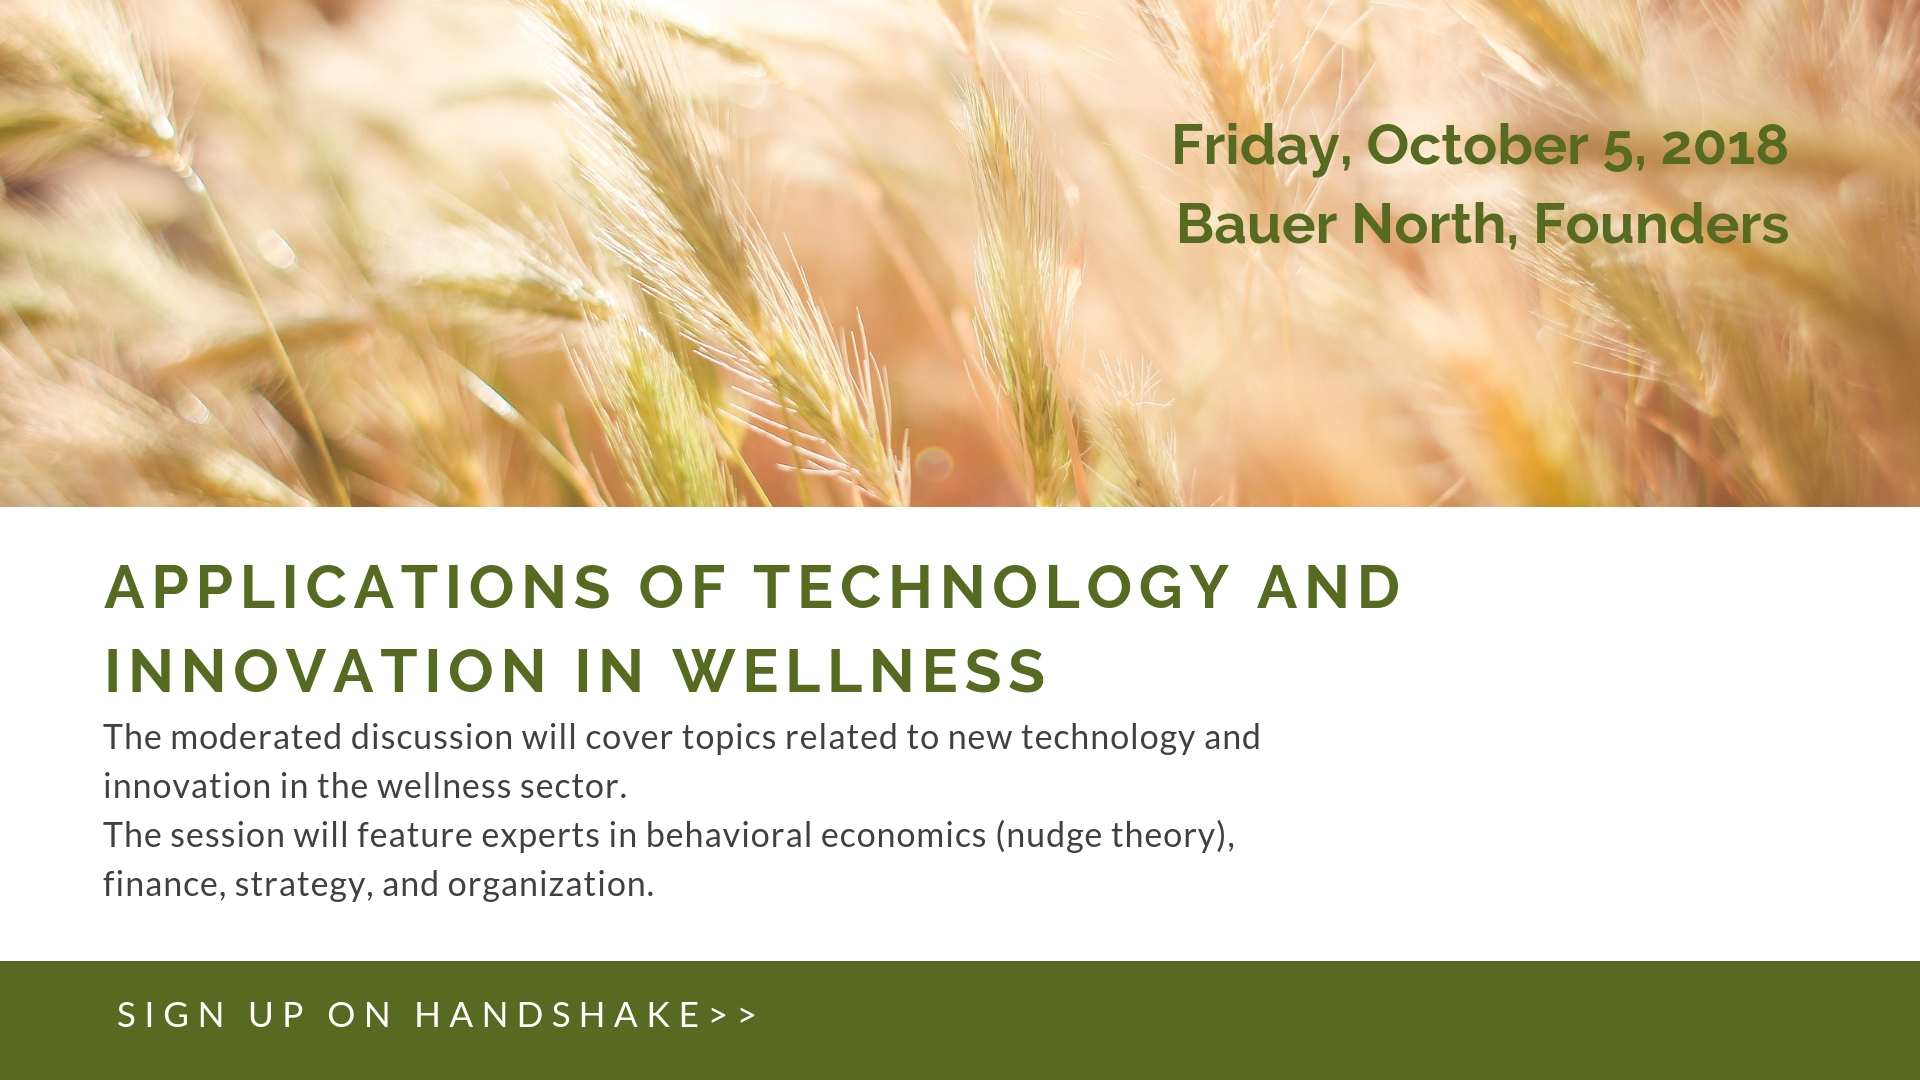 applications of technology innovation in wellness